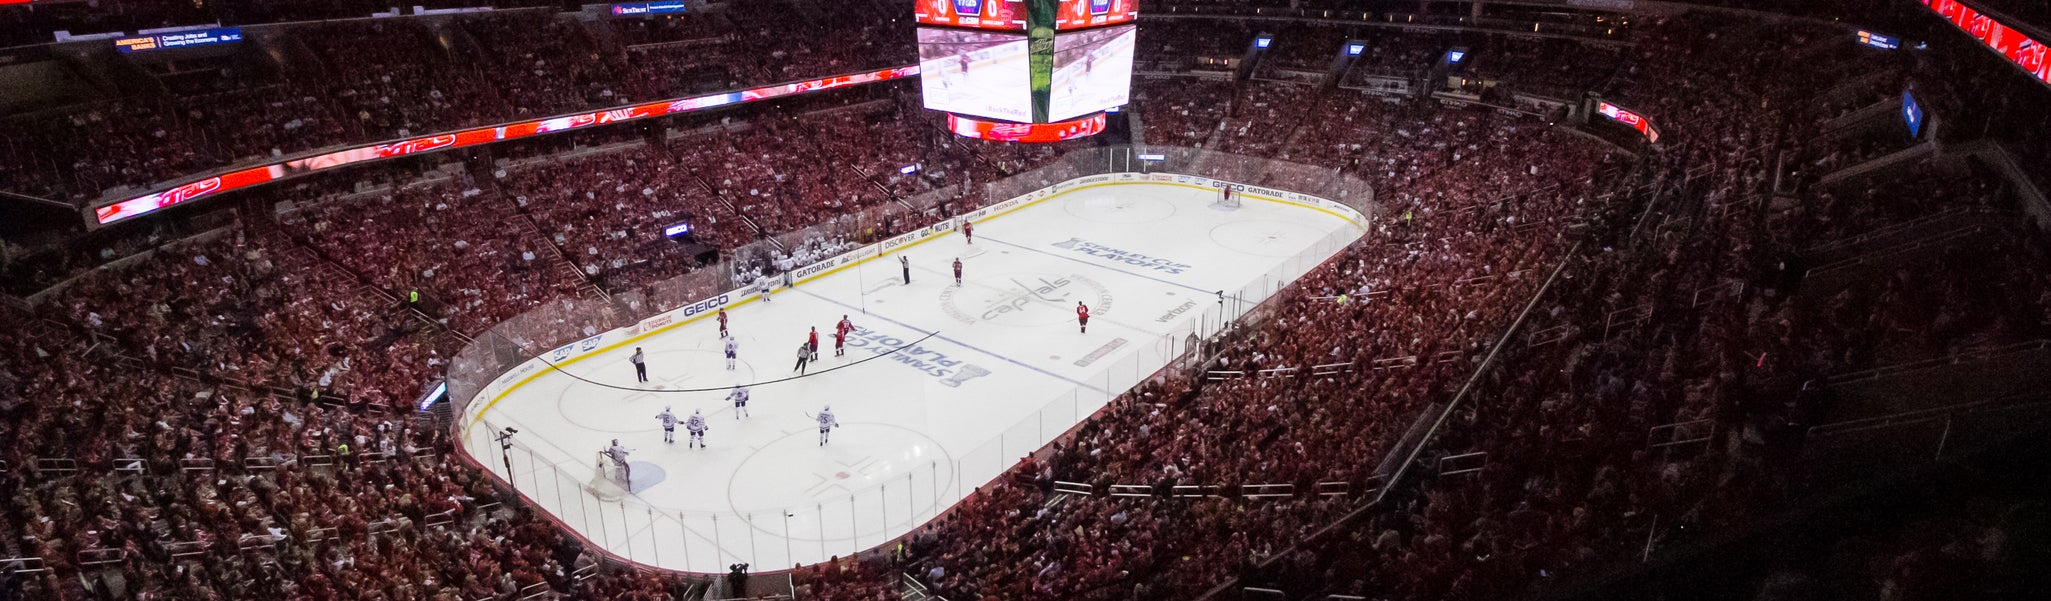 Seat view from Mezzanine End 412 at Capital One Arena